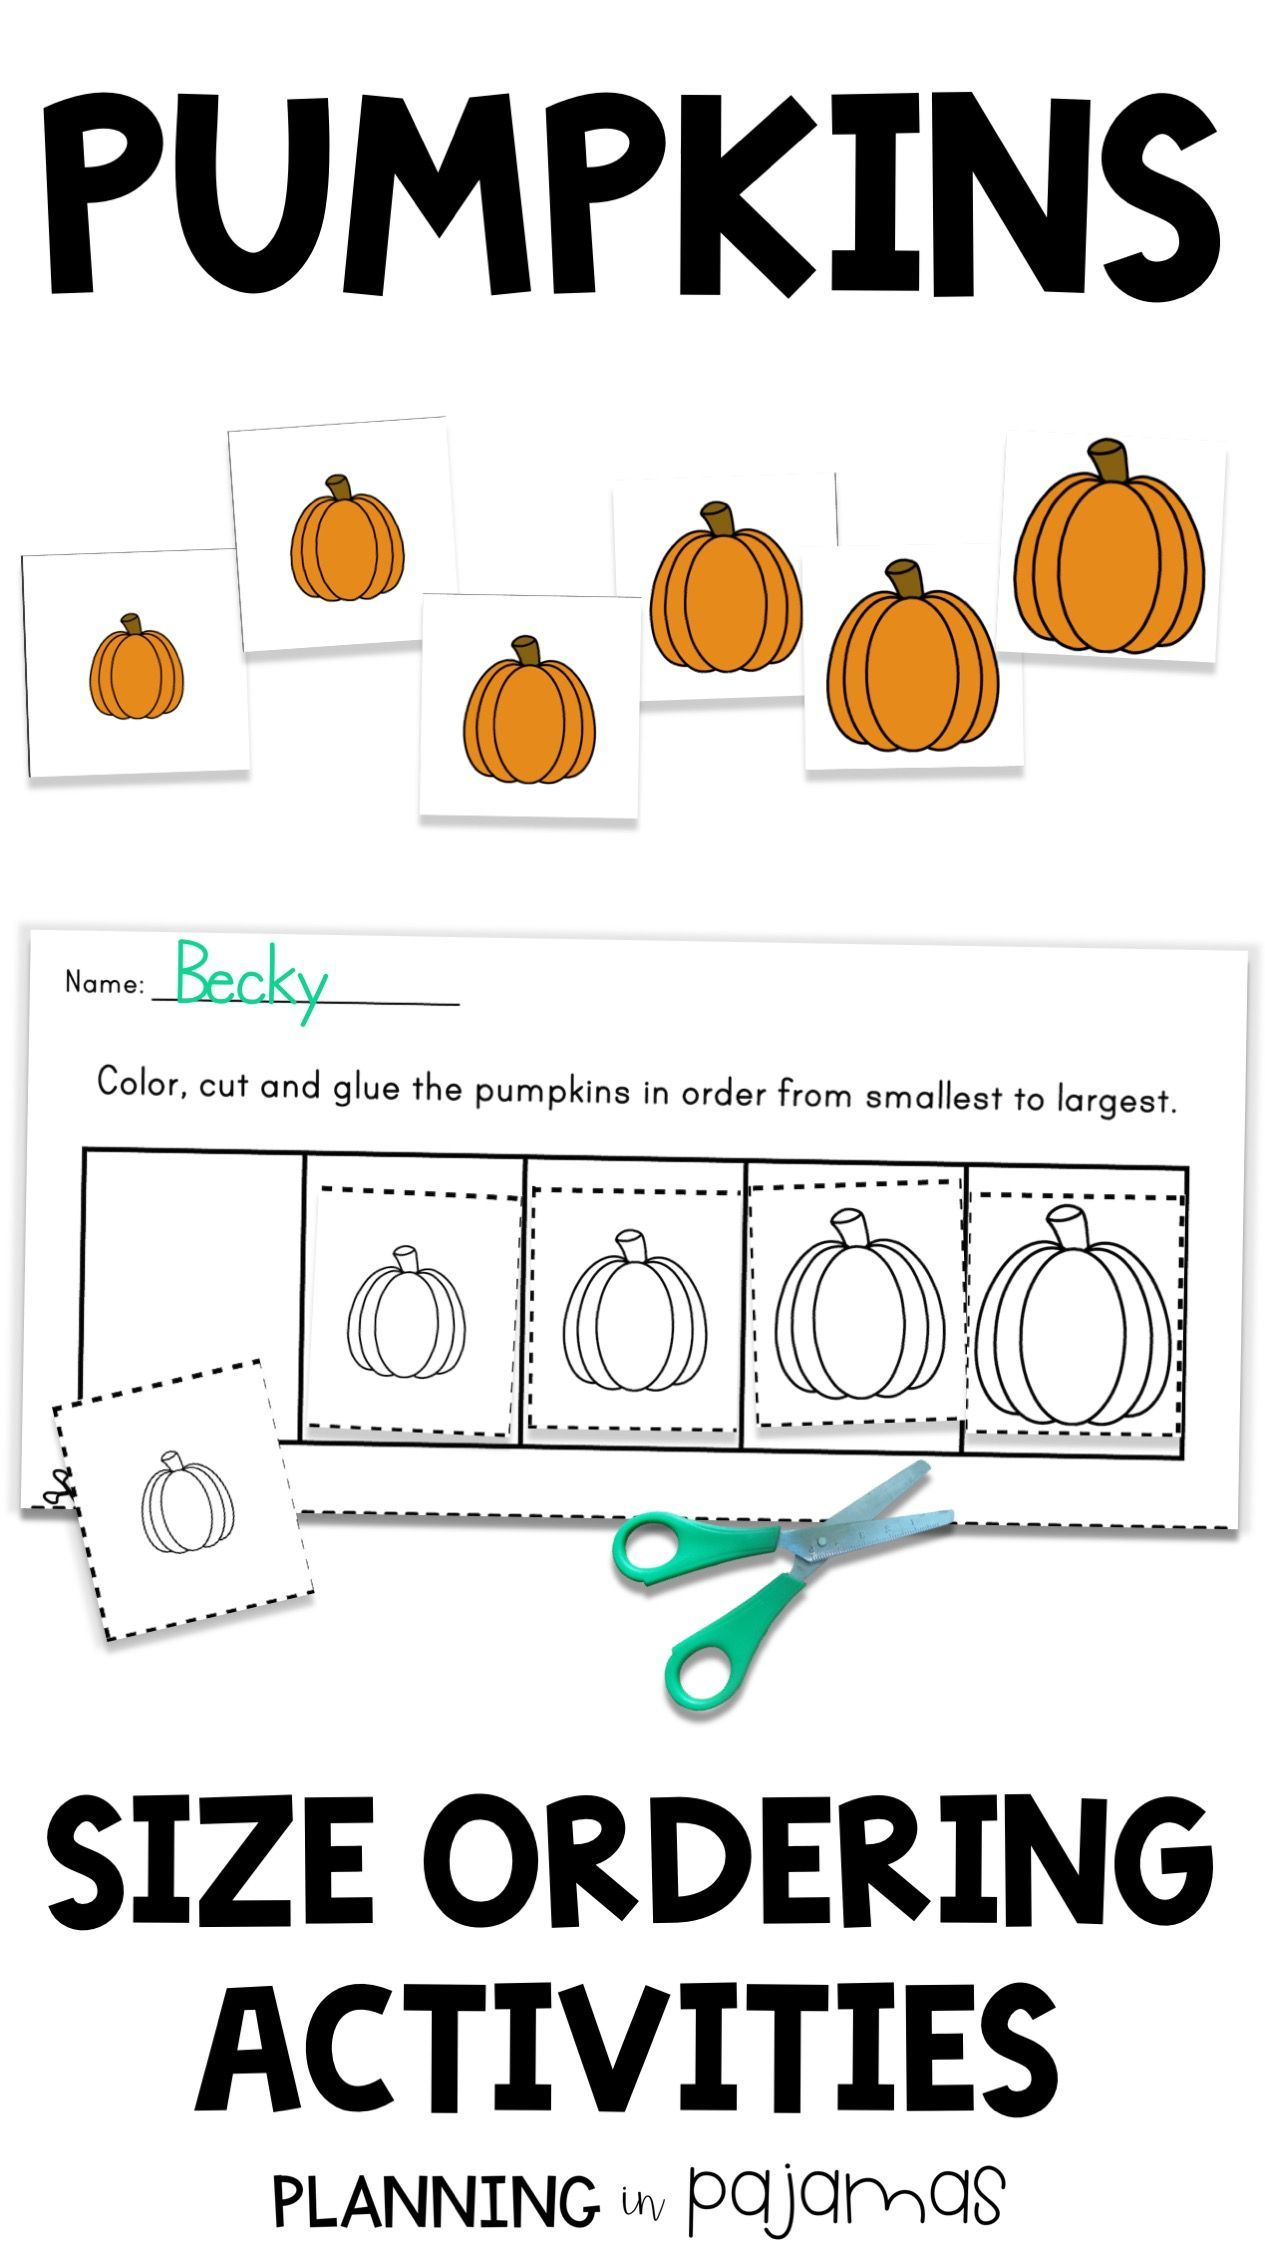 Pumpkins Size Ordering From Smallest To Largest In